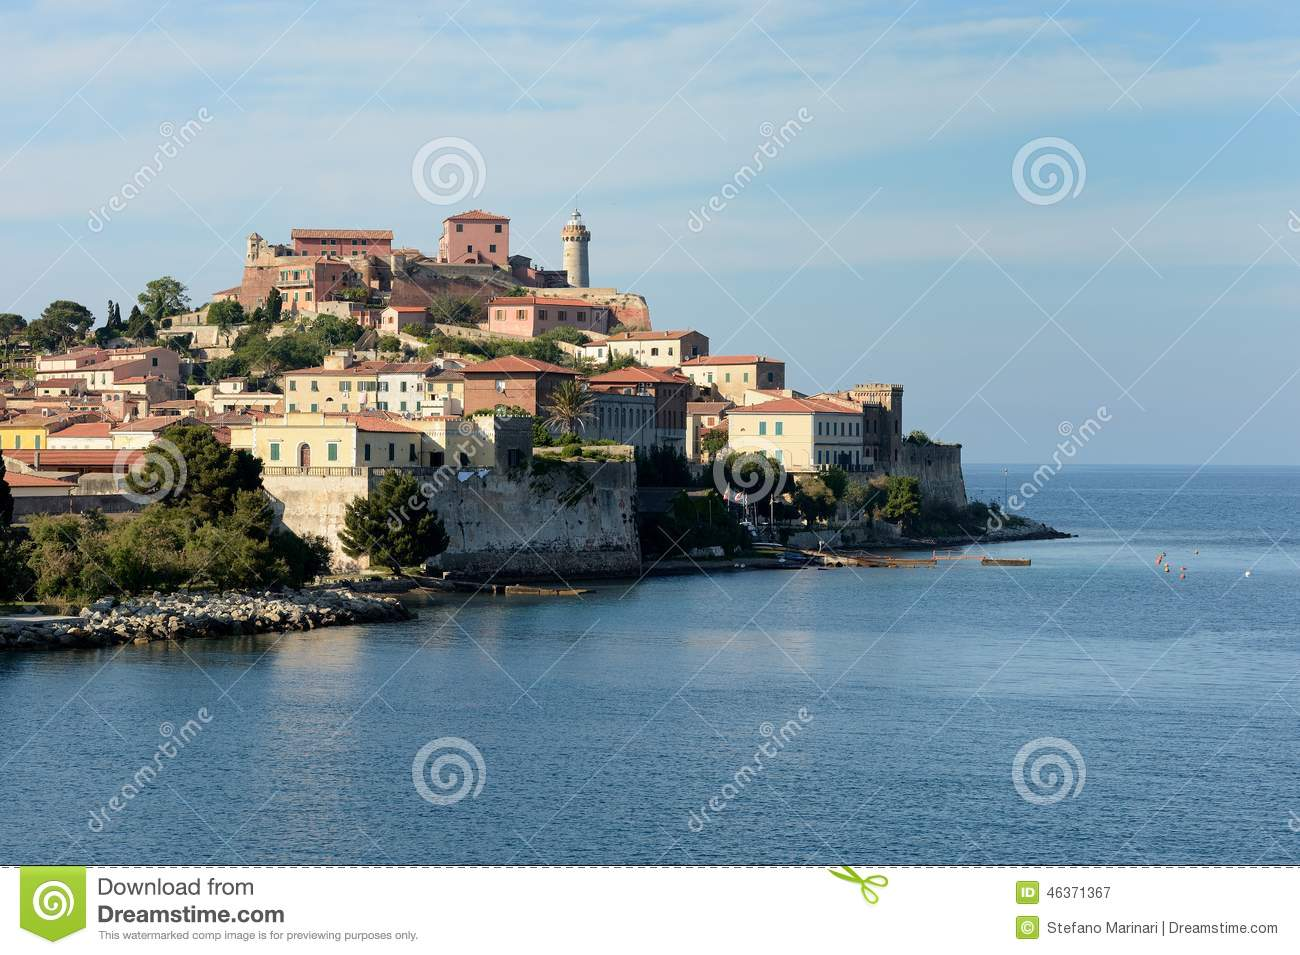 Elba Harbor Entrance Stock Photos & Elba Harbor Entrance Stock ...